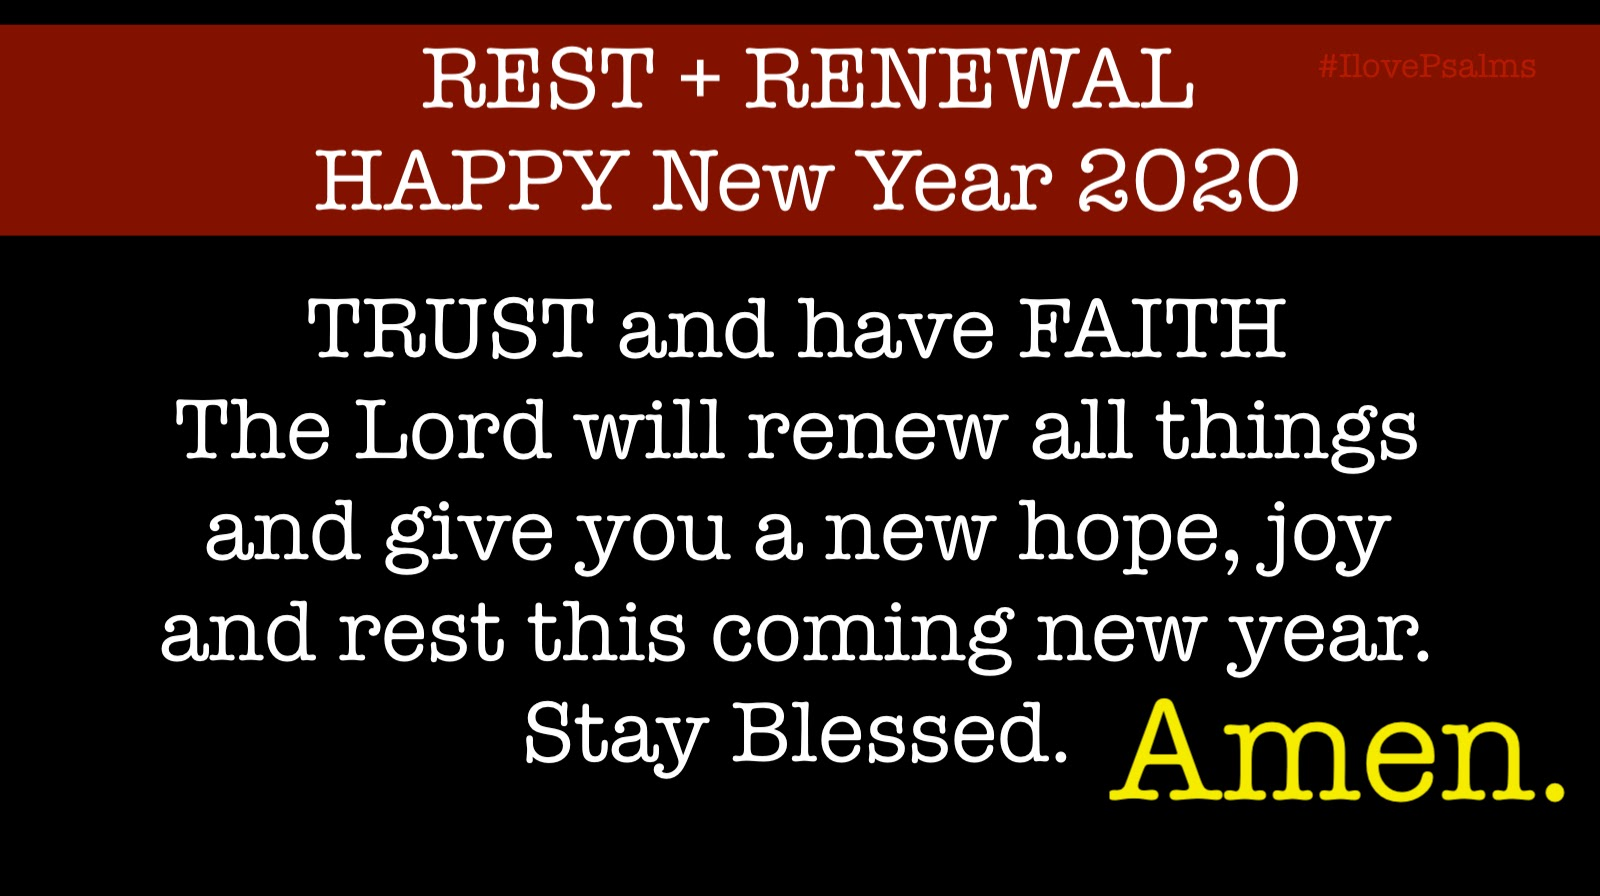 15 Bible Verses for the coming New Year 2020 - REST + RENEWAL